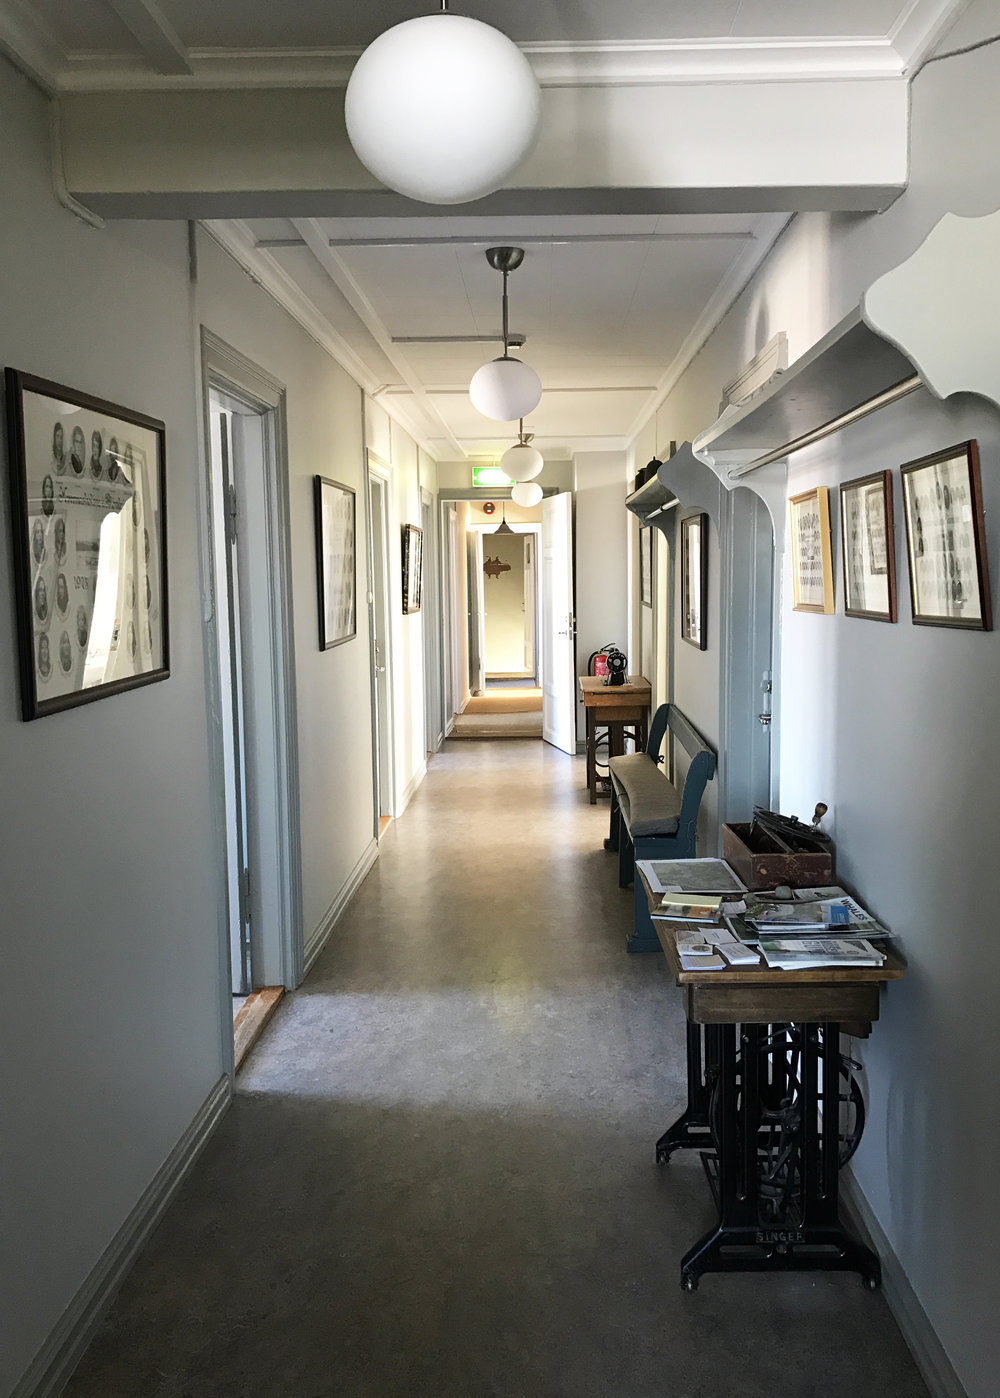 The hallway of our residency. Lined with the class images of past college attendees. Blönduós, Iceland.